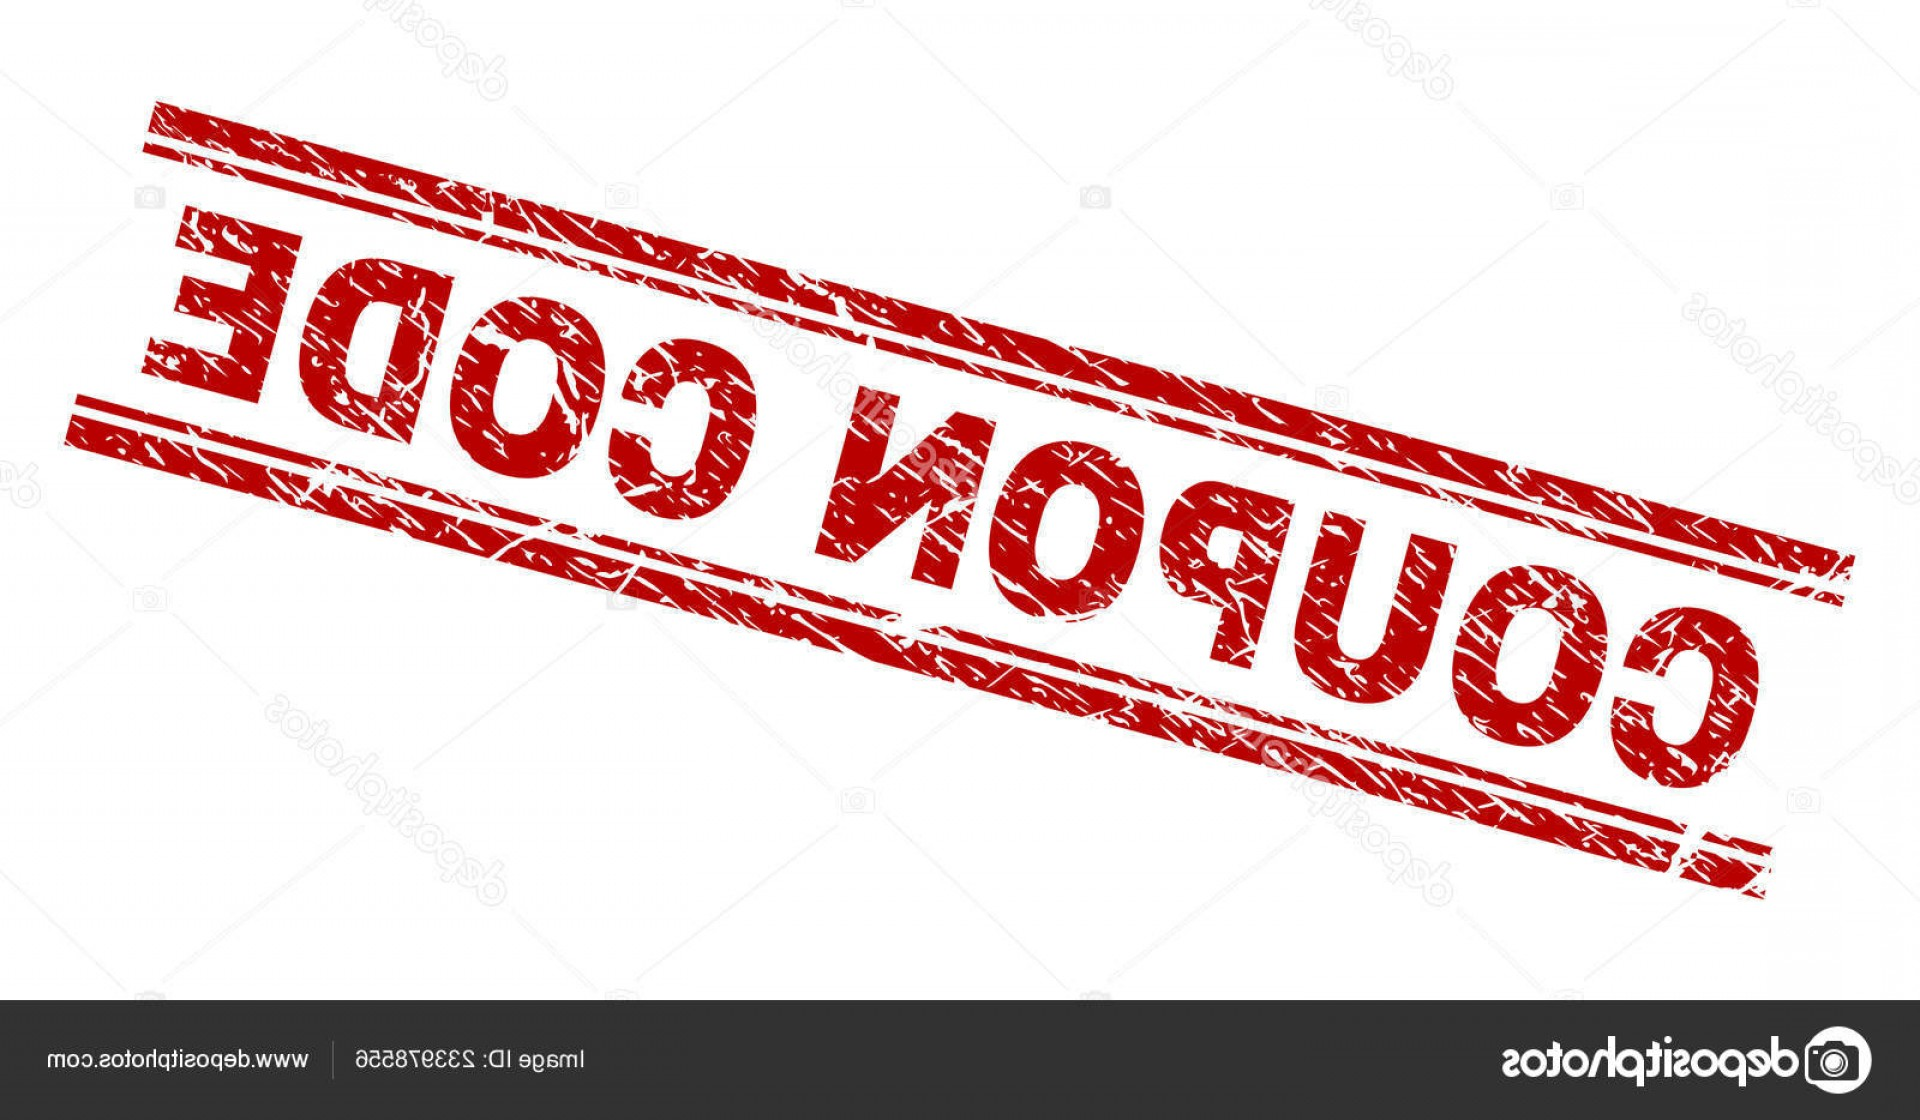 RedVector Coupon: Stock Illustration Scratched Textured Coupon Code Stamp